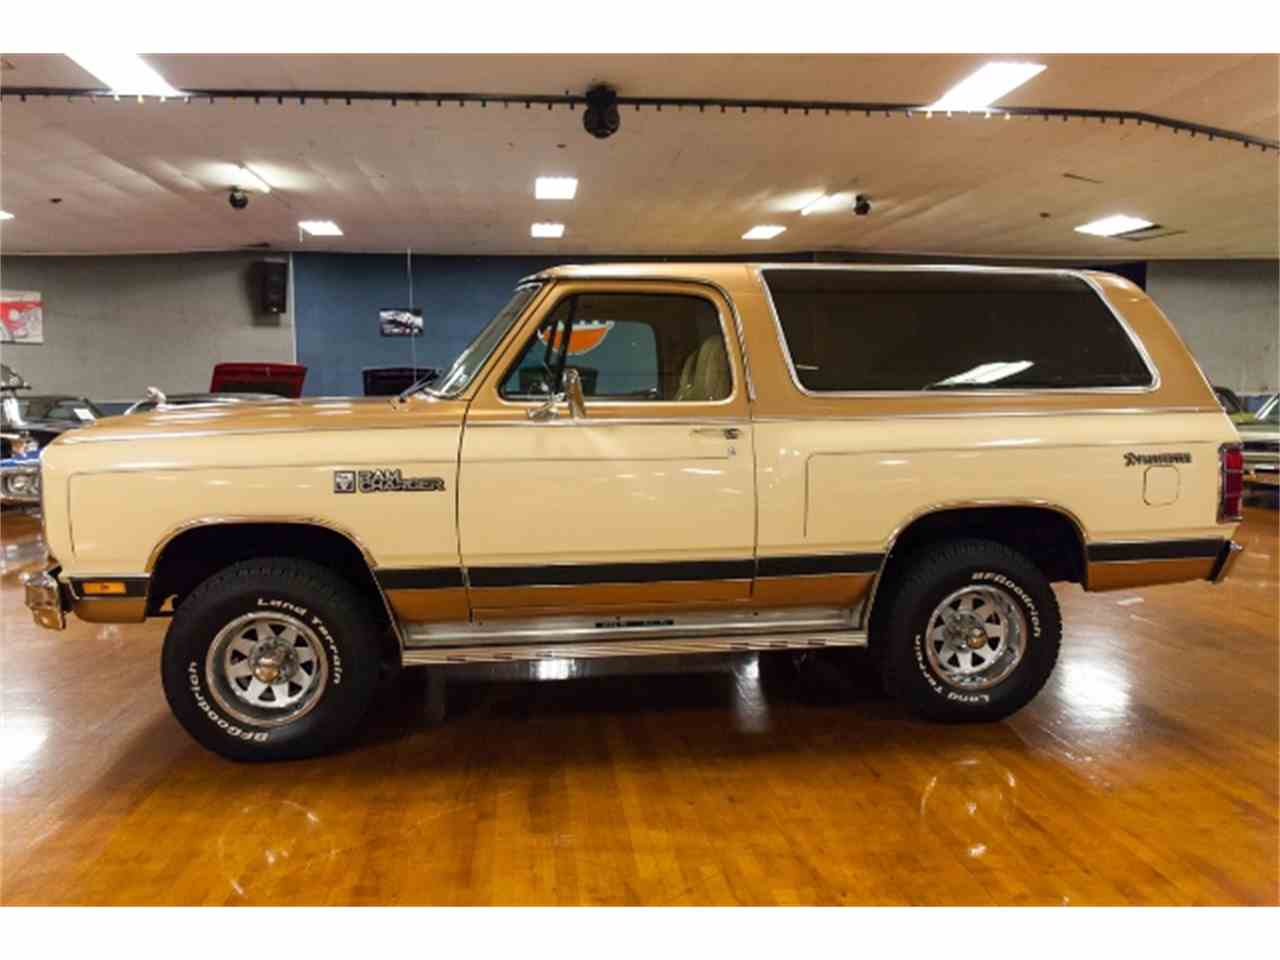 ma slant category sale in auto ramcharger dodge united states westfield massachusetts for